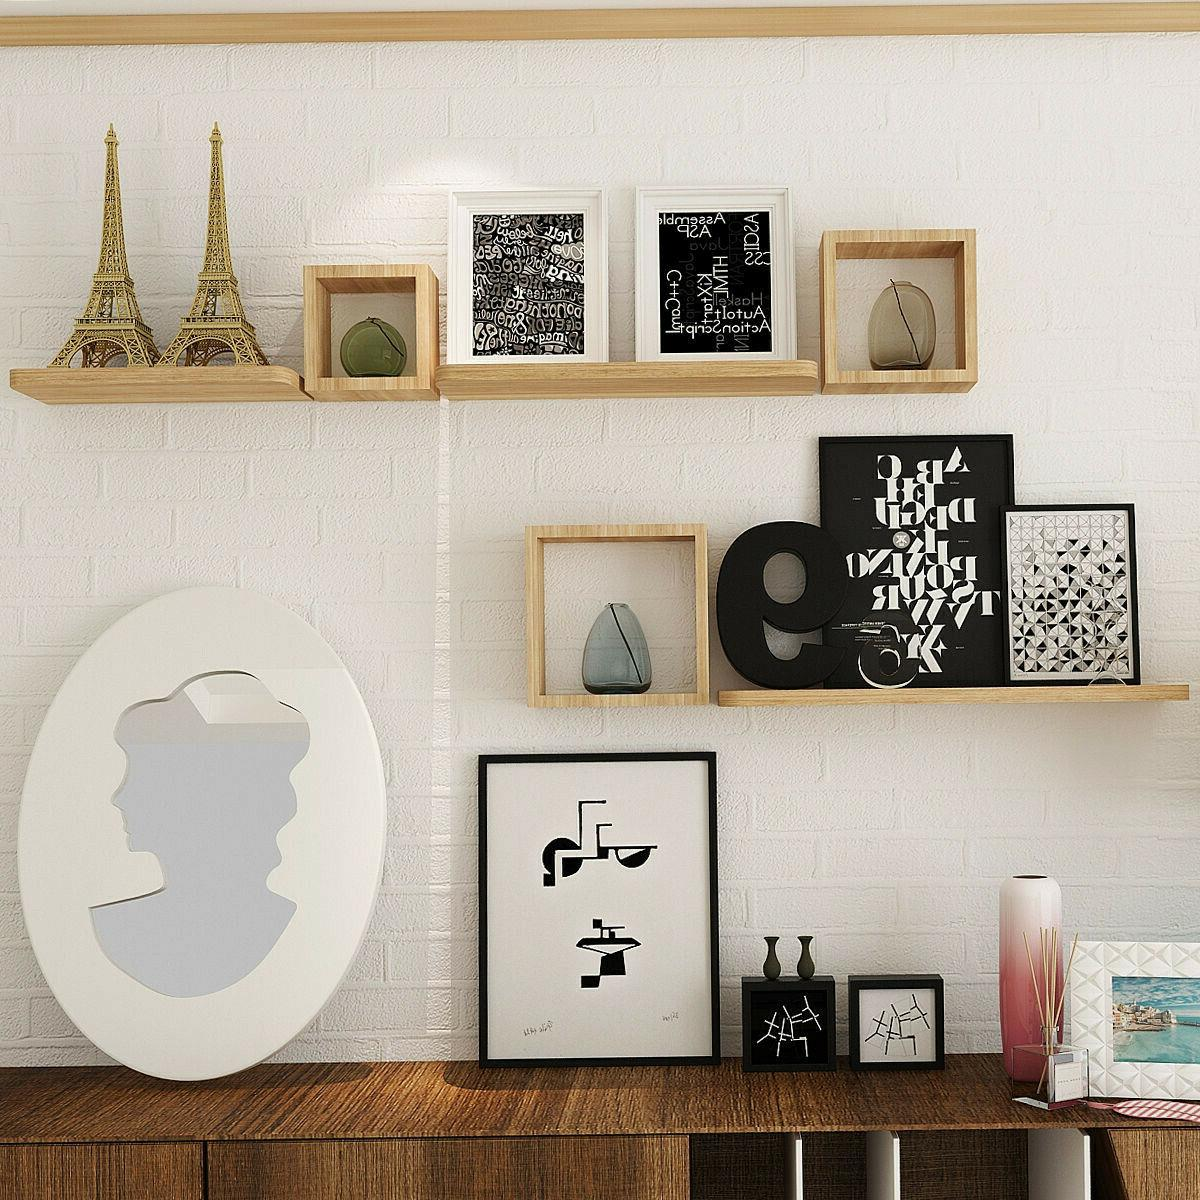 Floating Wall Shelves Home Display Office Bookshelf Decor 6